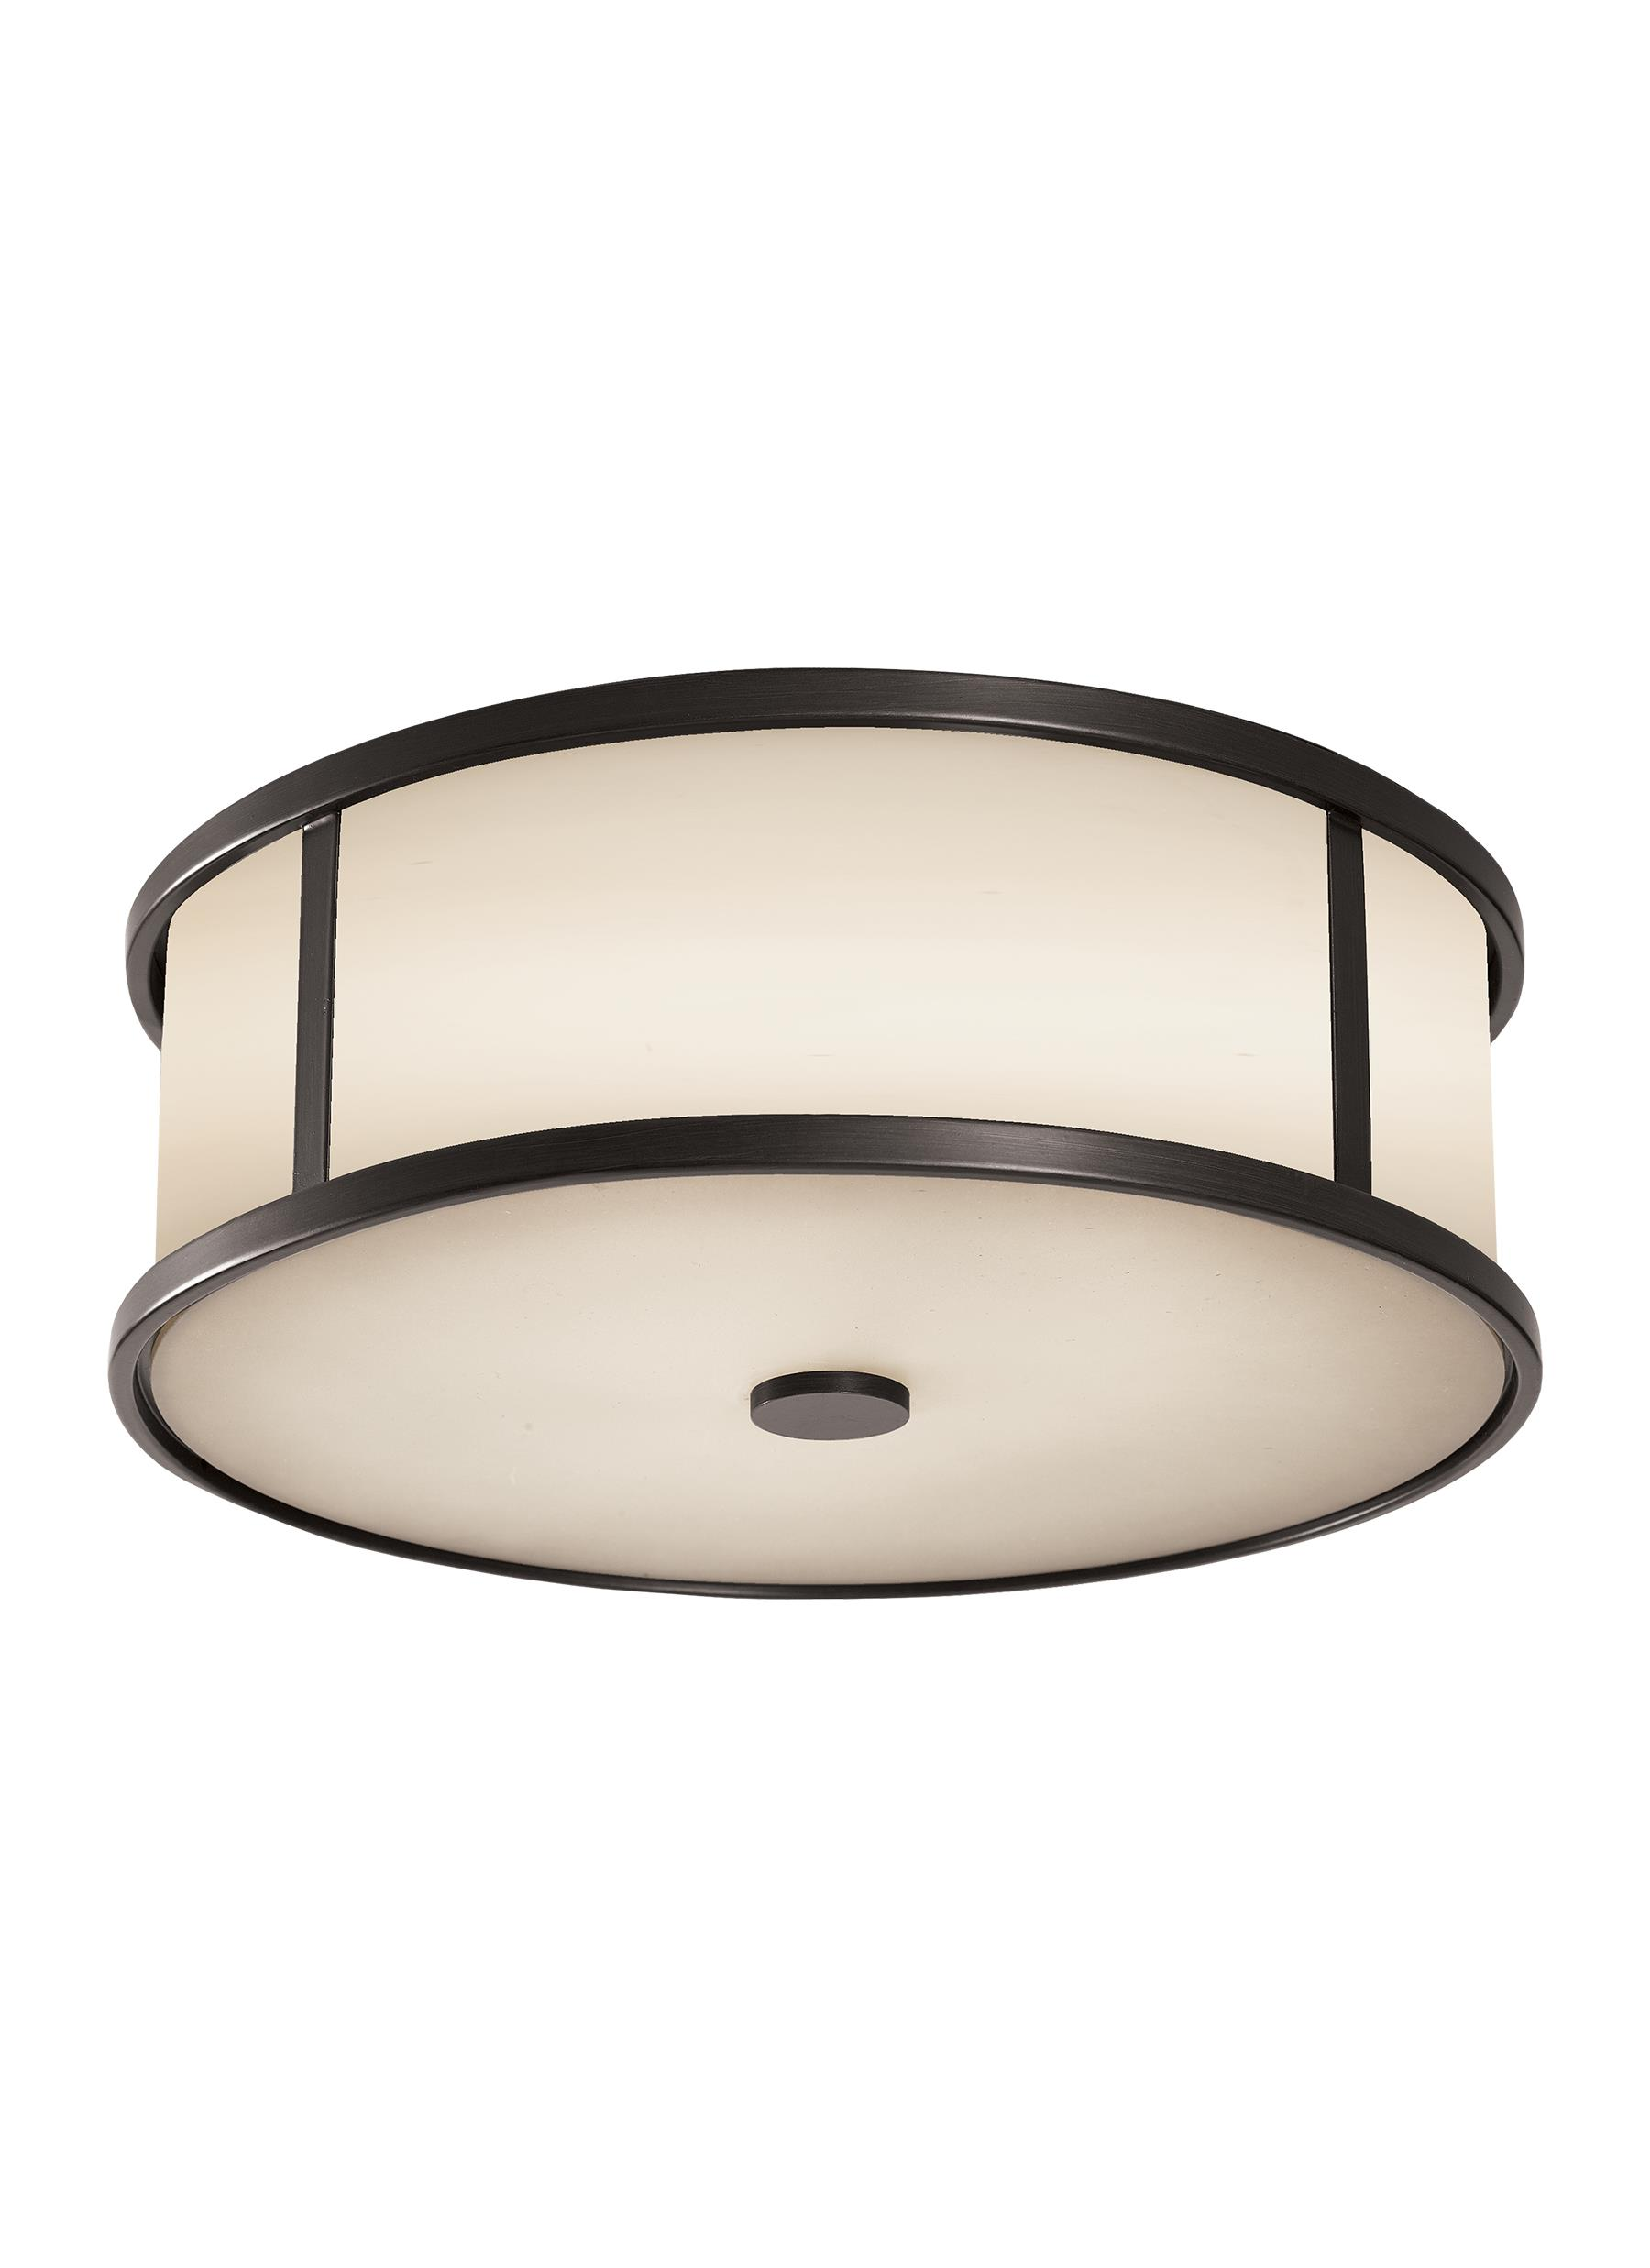 ol7613es,3 - light ceiling fixture,espresso